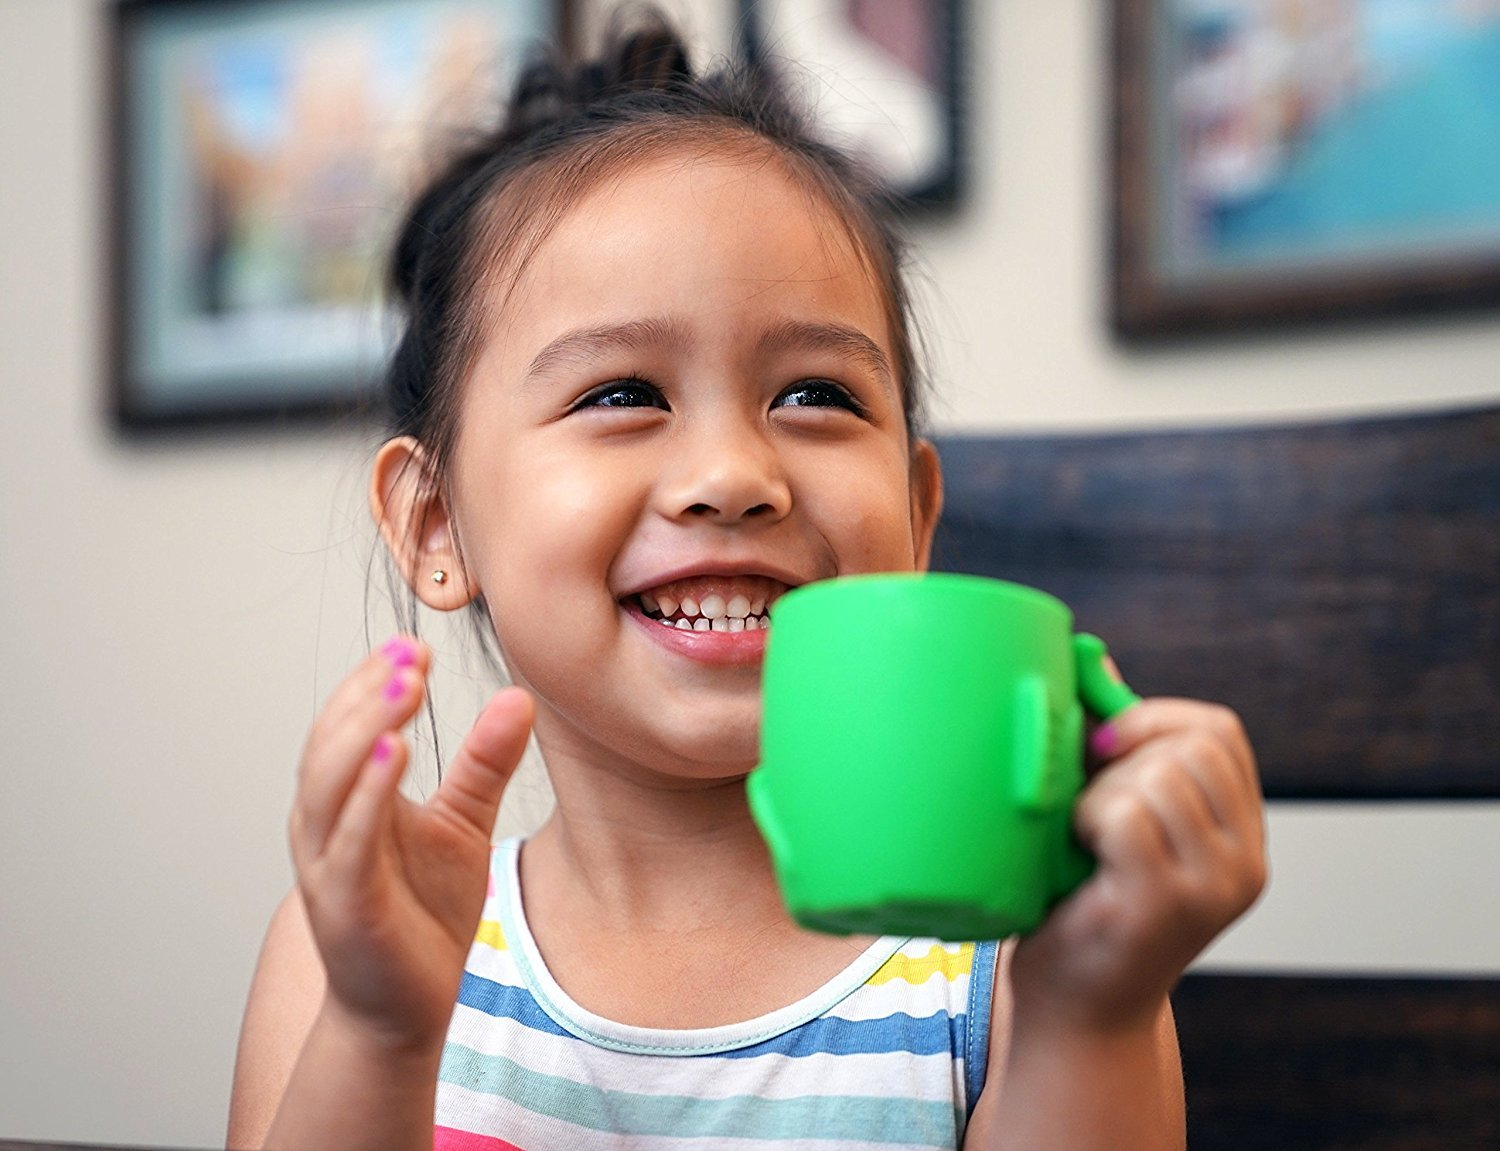 Baby Kid Sippy Cup Mug For Toddlers Learning Cup Elephant Design Great For Baby's Interaction Dexterity Food Grade Silicone BPA FREE Bambini Bear - Lime Green by Bambini Bear (Image #7)